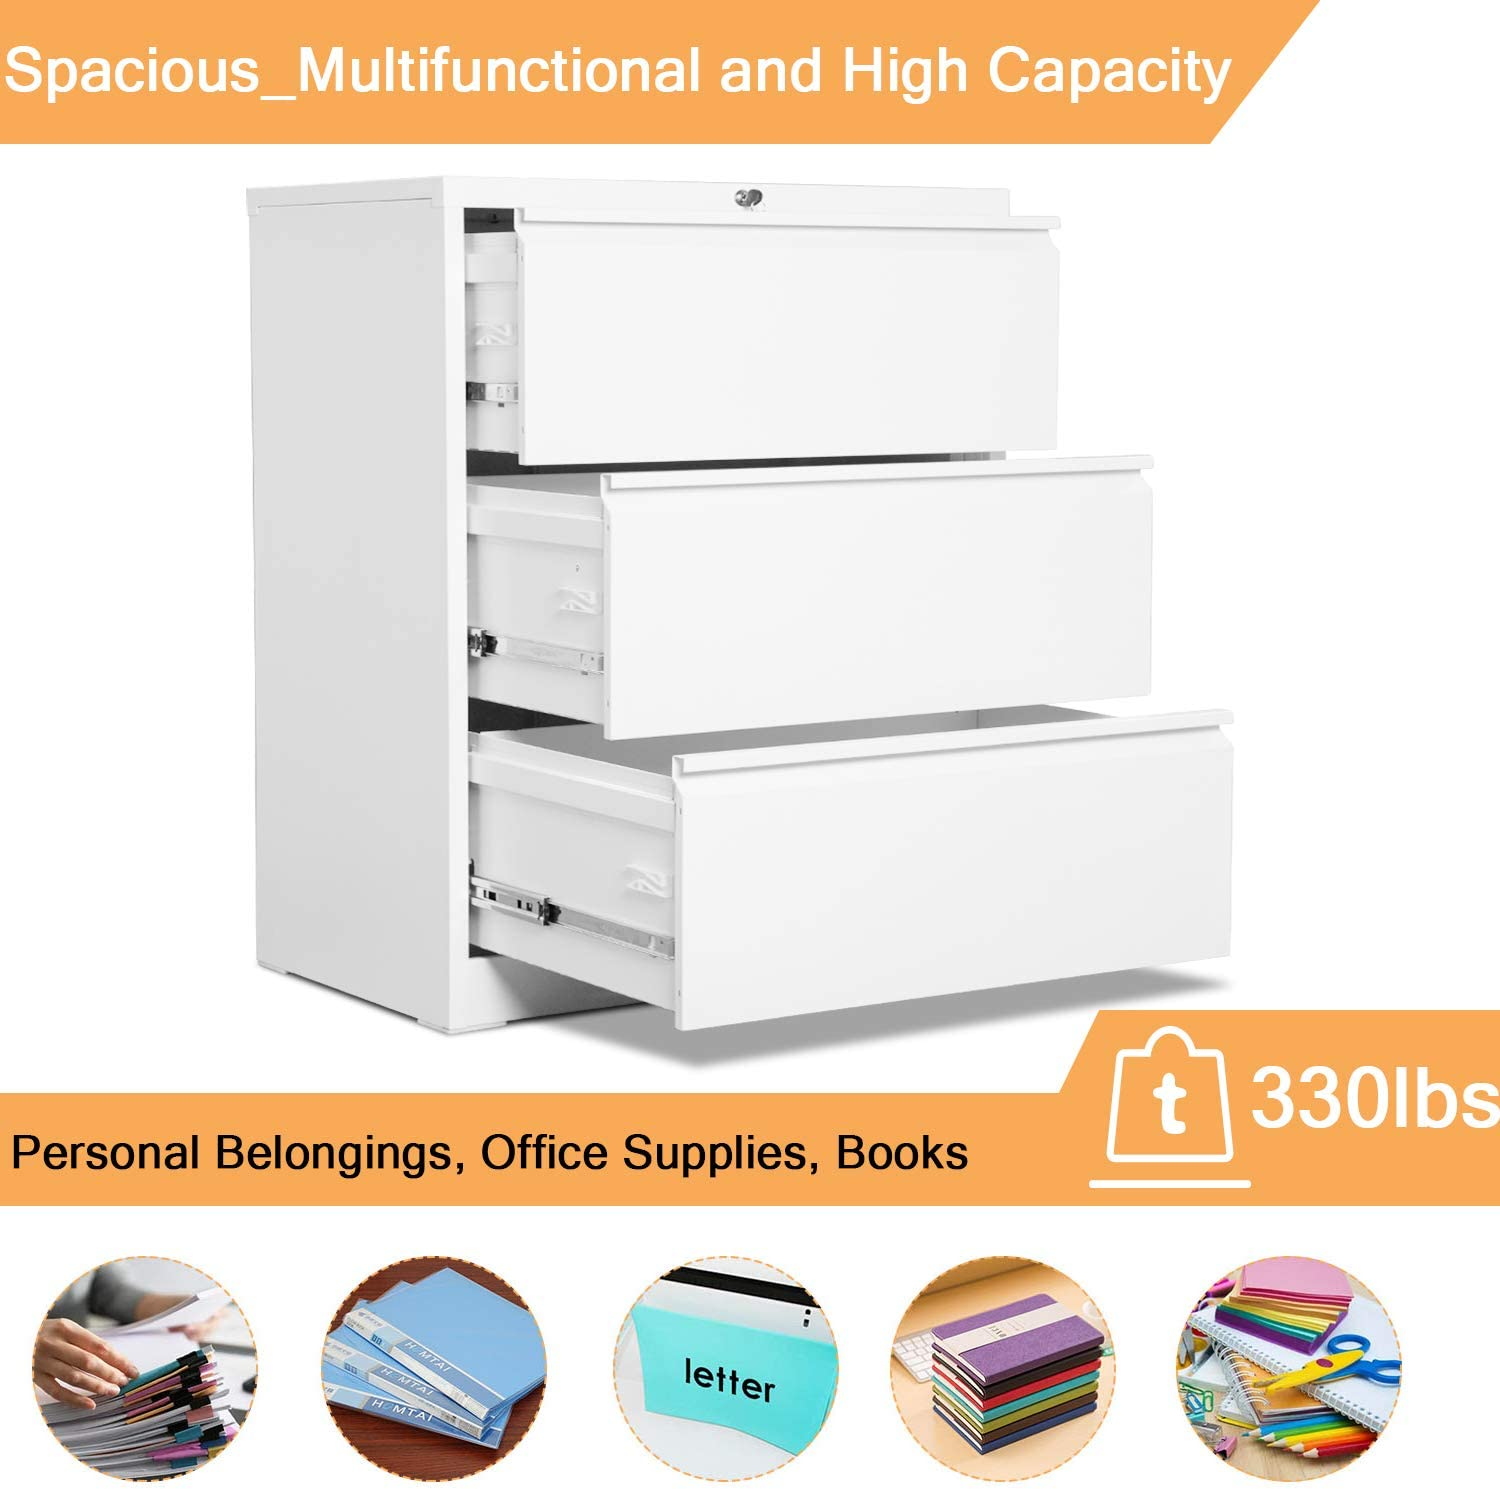 Metal Storage Cabinet,Anti-tilt and Know Down Structure,Folding Type Screwless Design,Assembly Required Black AOBABO 3 Drawer lateral File Cabinet W 30